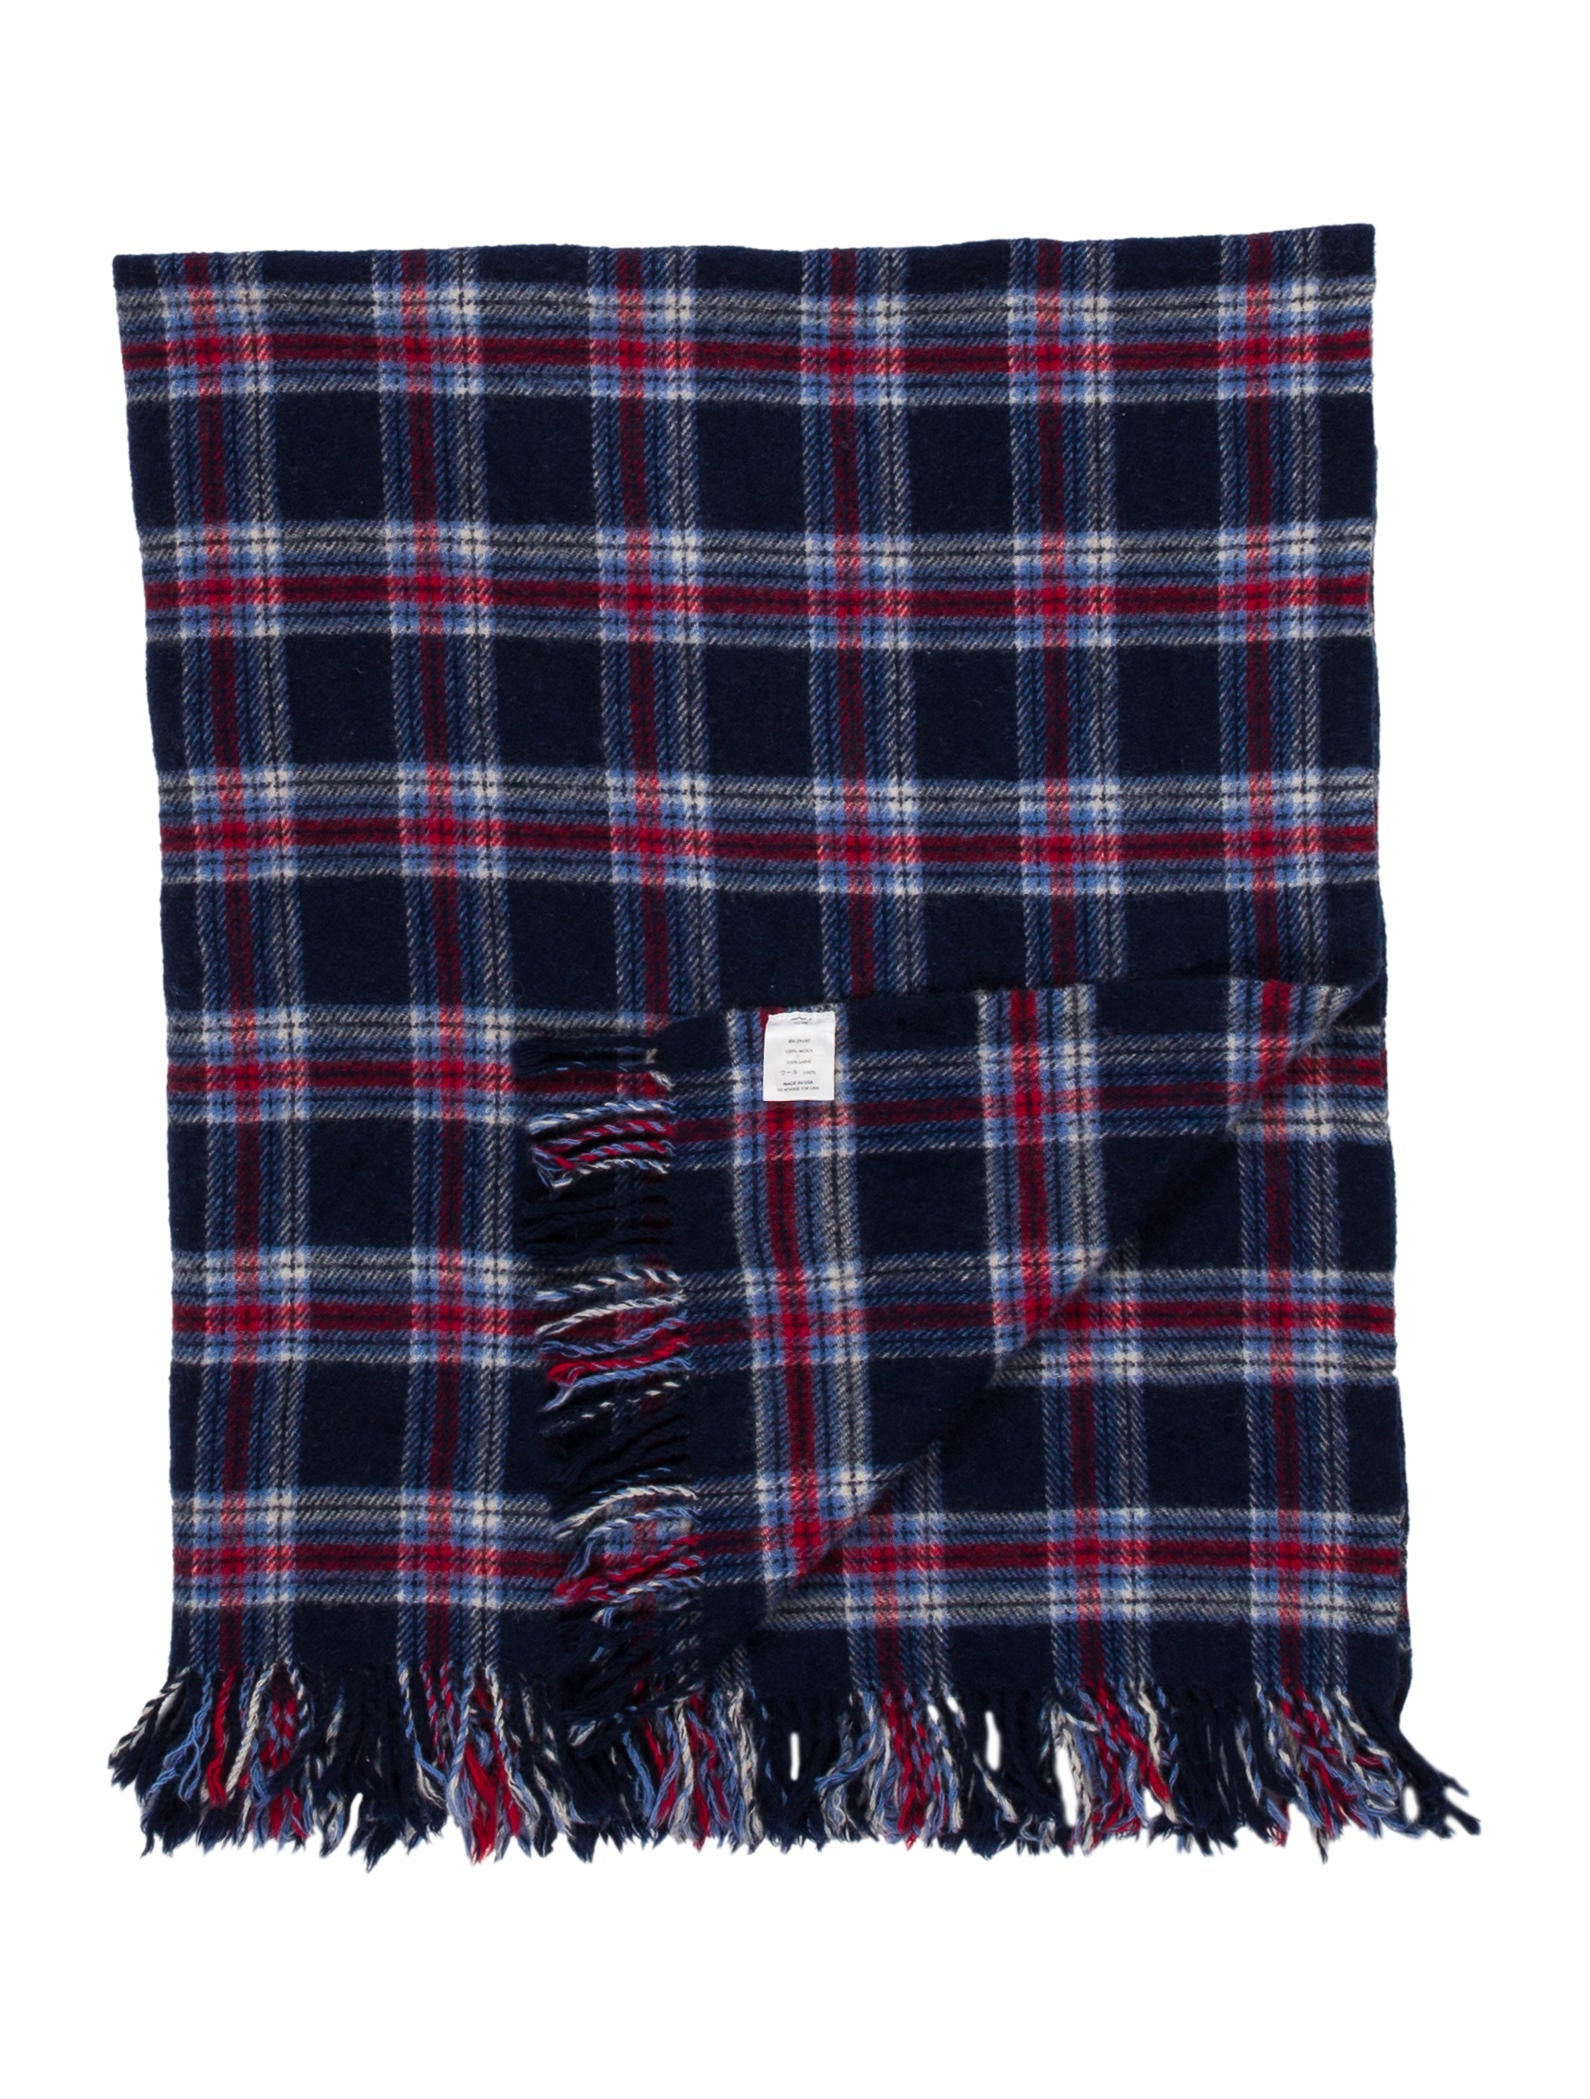 Pendleton Wool Plaid Throw Blanket - Pillows And Throws - PNDDL20022 The RealReal